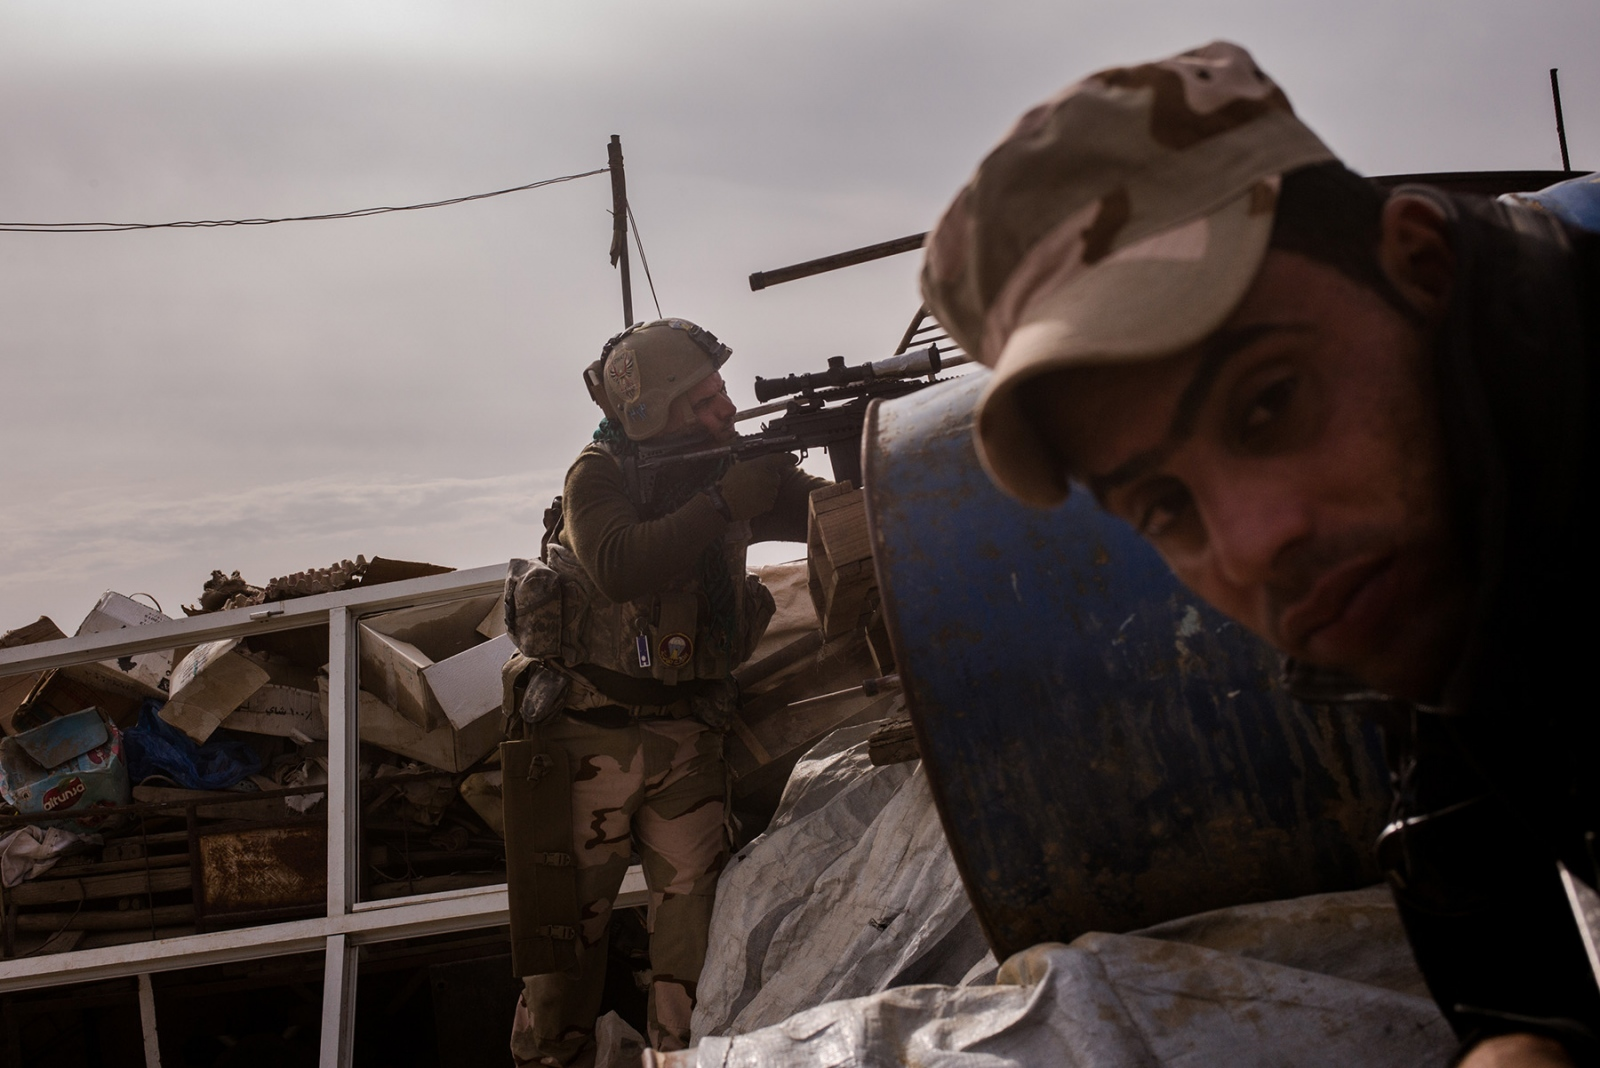 A soldier of the Iraqi Army's Ninth Division aims towards ISIS positions in the Entisar neighborhood of Mosul, Iraq, on Tuesday, November 15, 2016. The presence of so many civilians inside the city has slowed the offensive to retake Mosul, which began in October 2016, against ISIS in taking back the so-called capital of their caliphate. For the civilians who remain, they face food shortages and the constant threat of being caught in the crossfire.